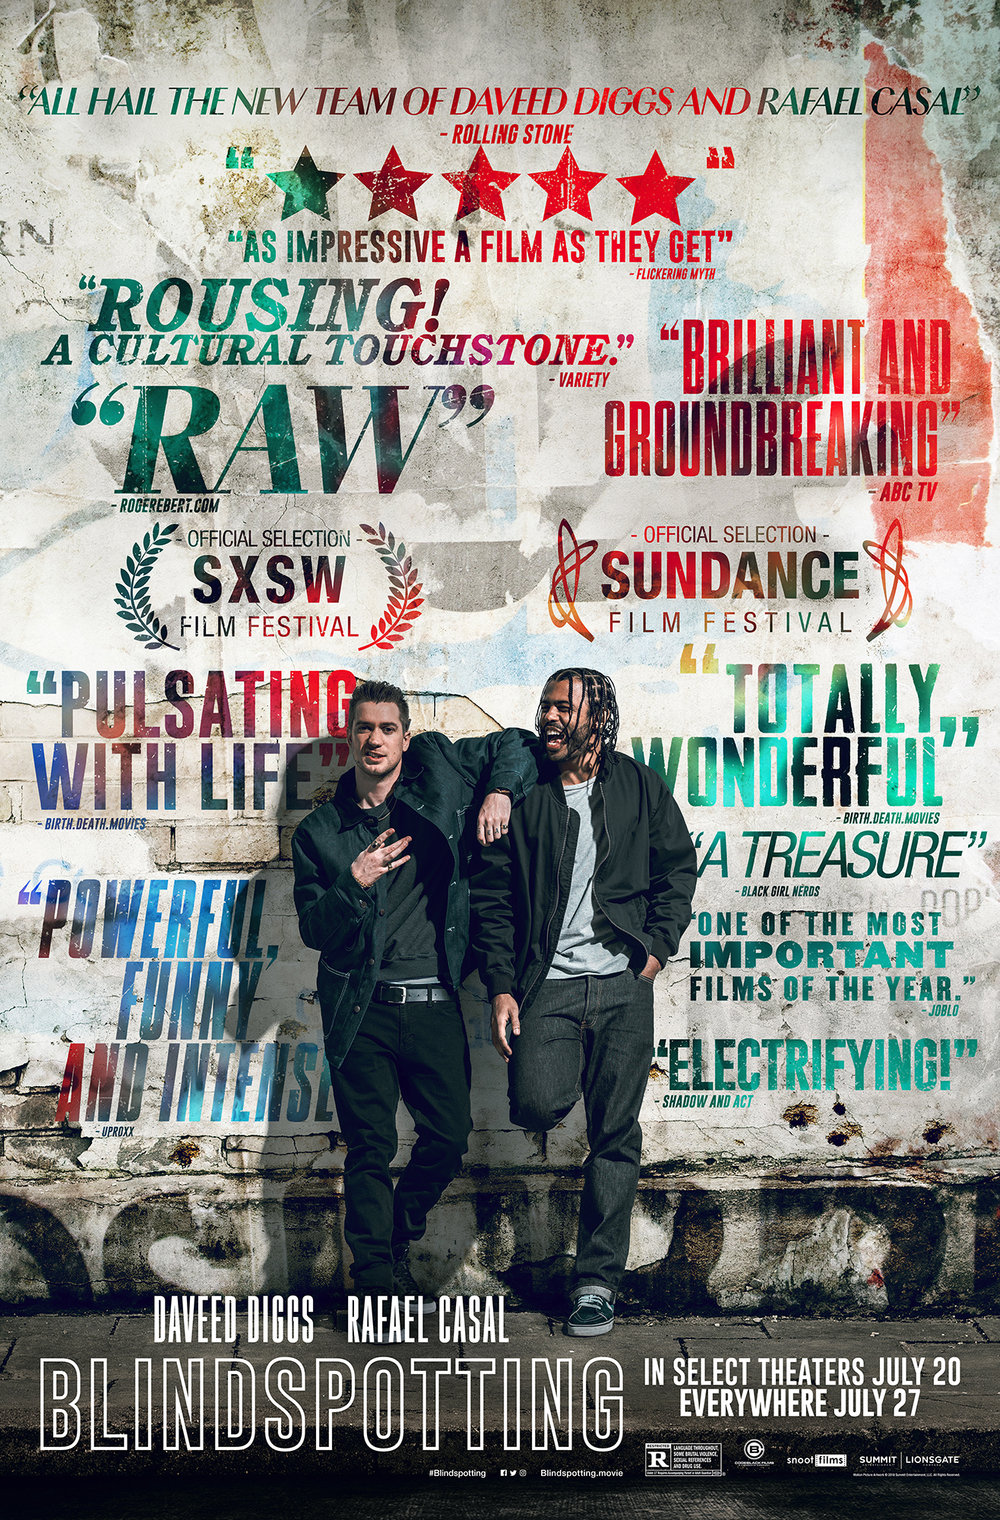 Blindspotting_1Sht_Quotes_25x38_100dpi.jpg